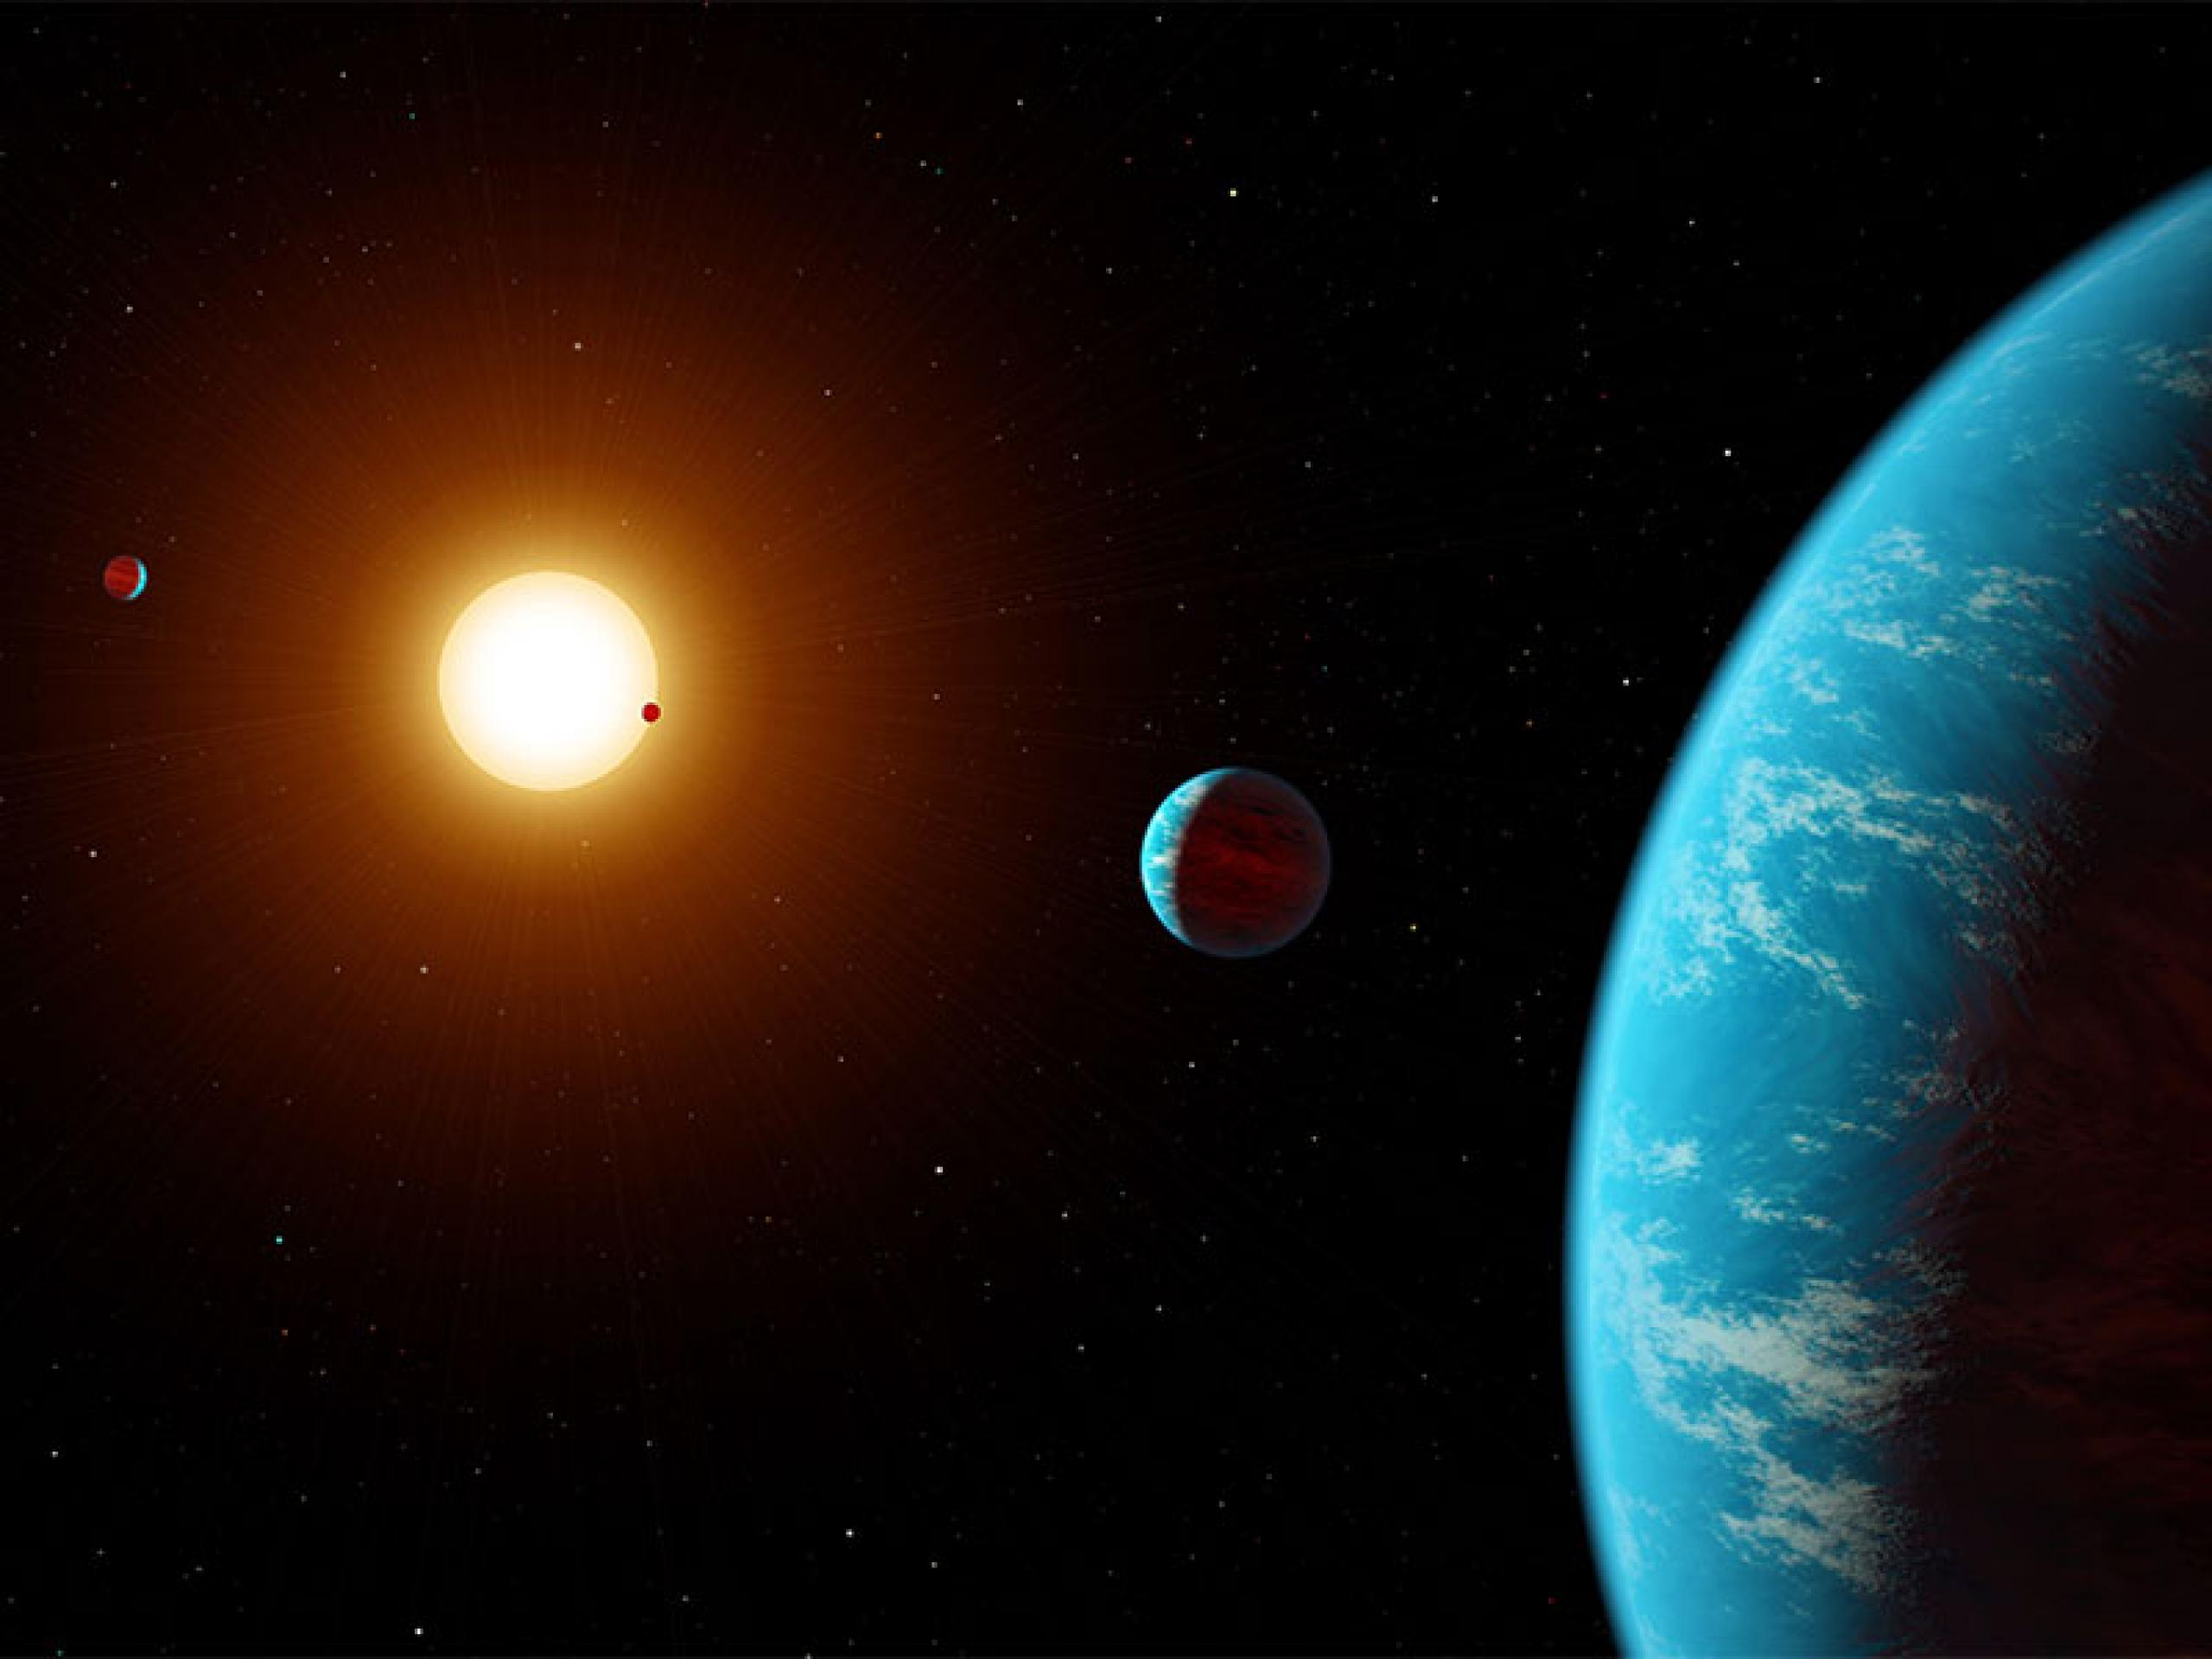 this artist concept shows K2-138, the first multi-planet system discovered by citizen scientists.